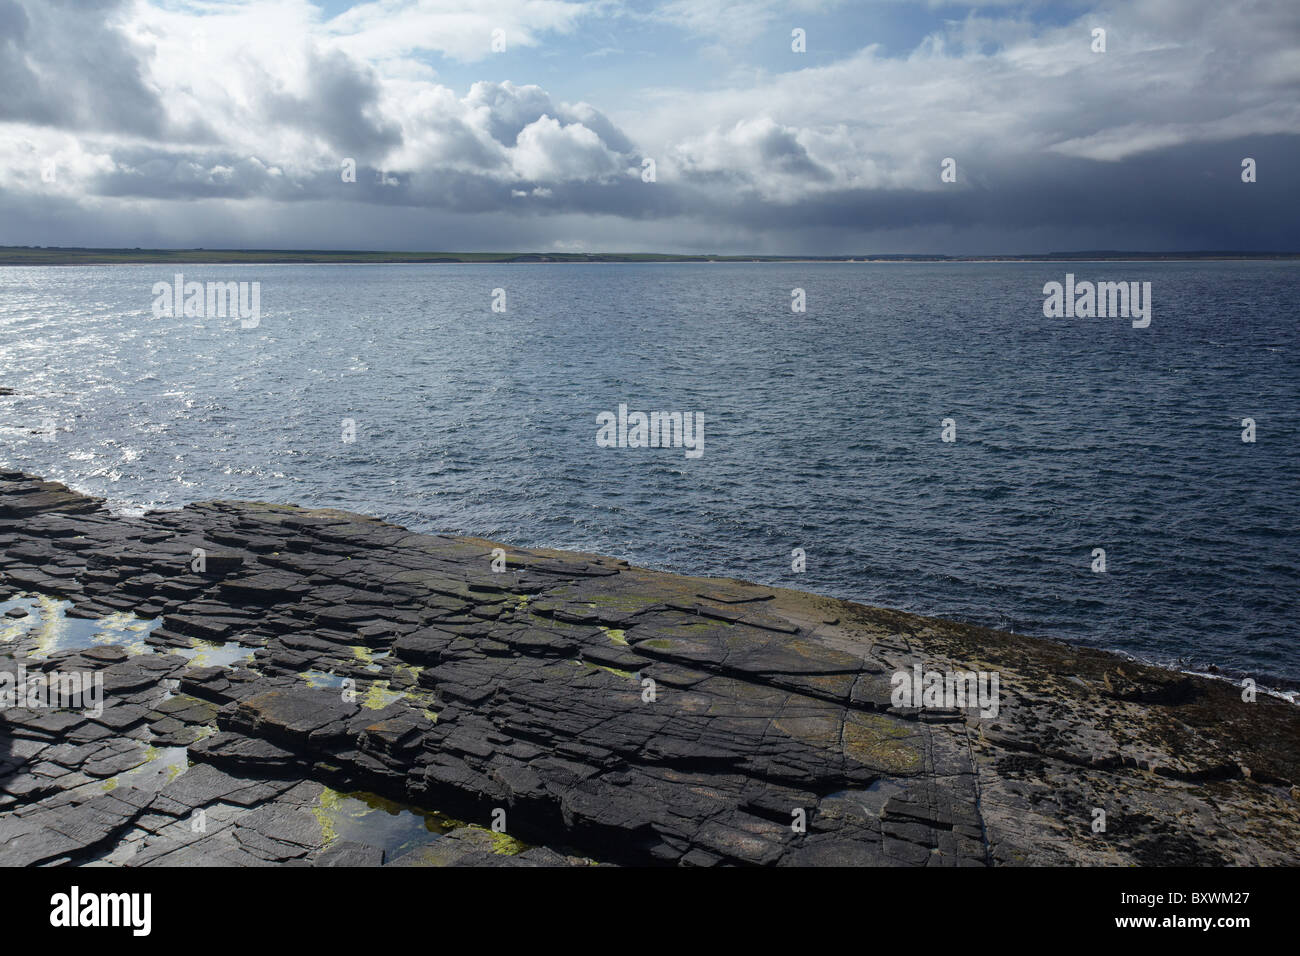 Eroded rock coast near Noss Head, Wick, Caithness, Highlands, Scotland, United Kingdom - Stock Image